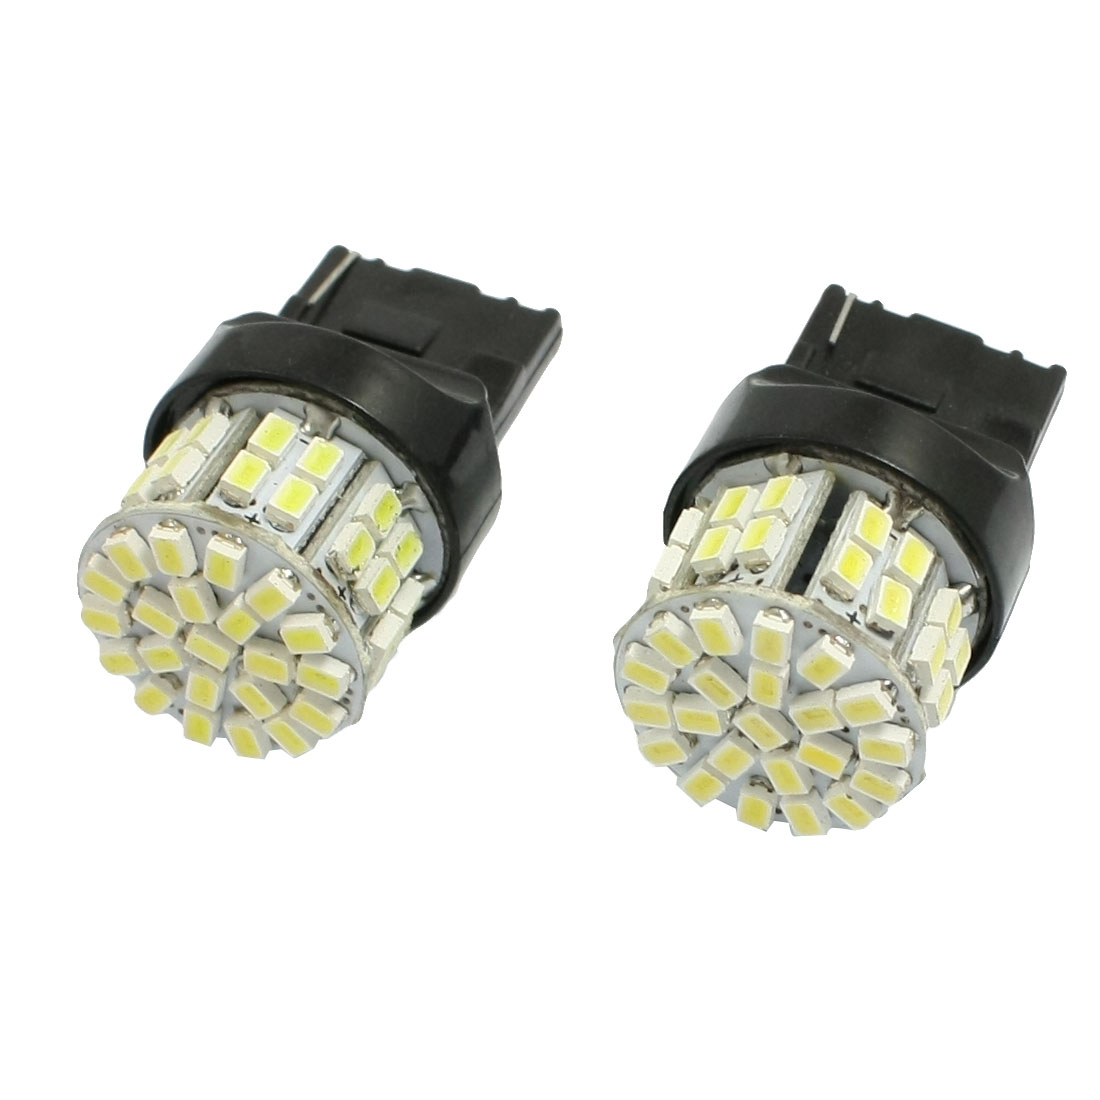 2 Pcs 12V T20 1206 7440 50SMD Brake Light LED Turning Tail Signal Bulb Lamps